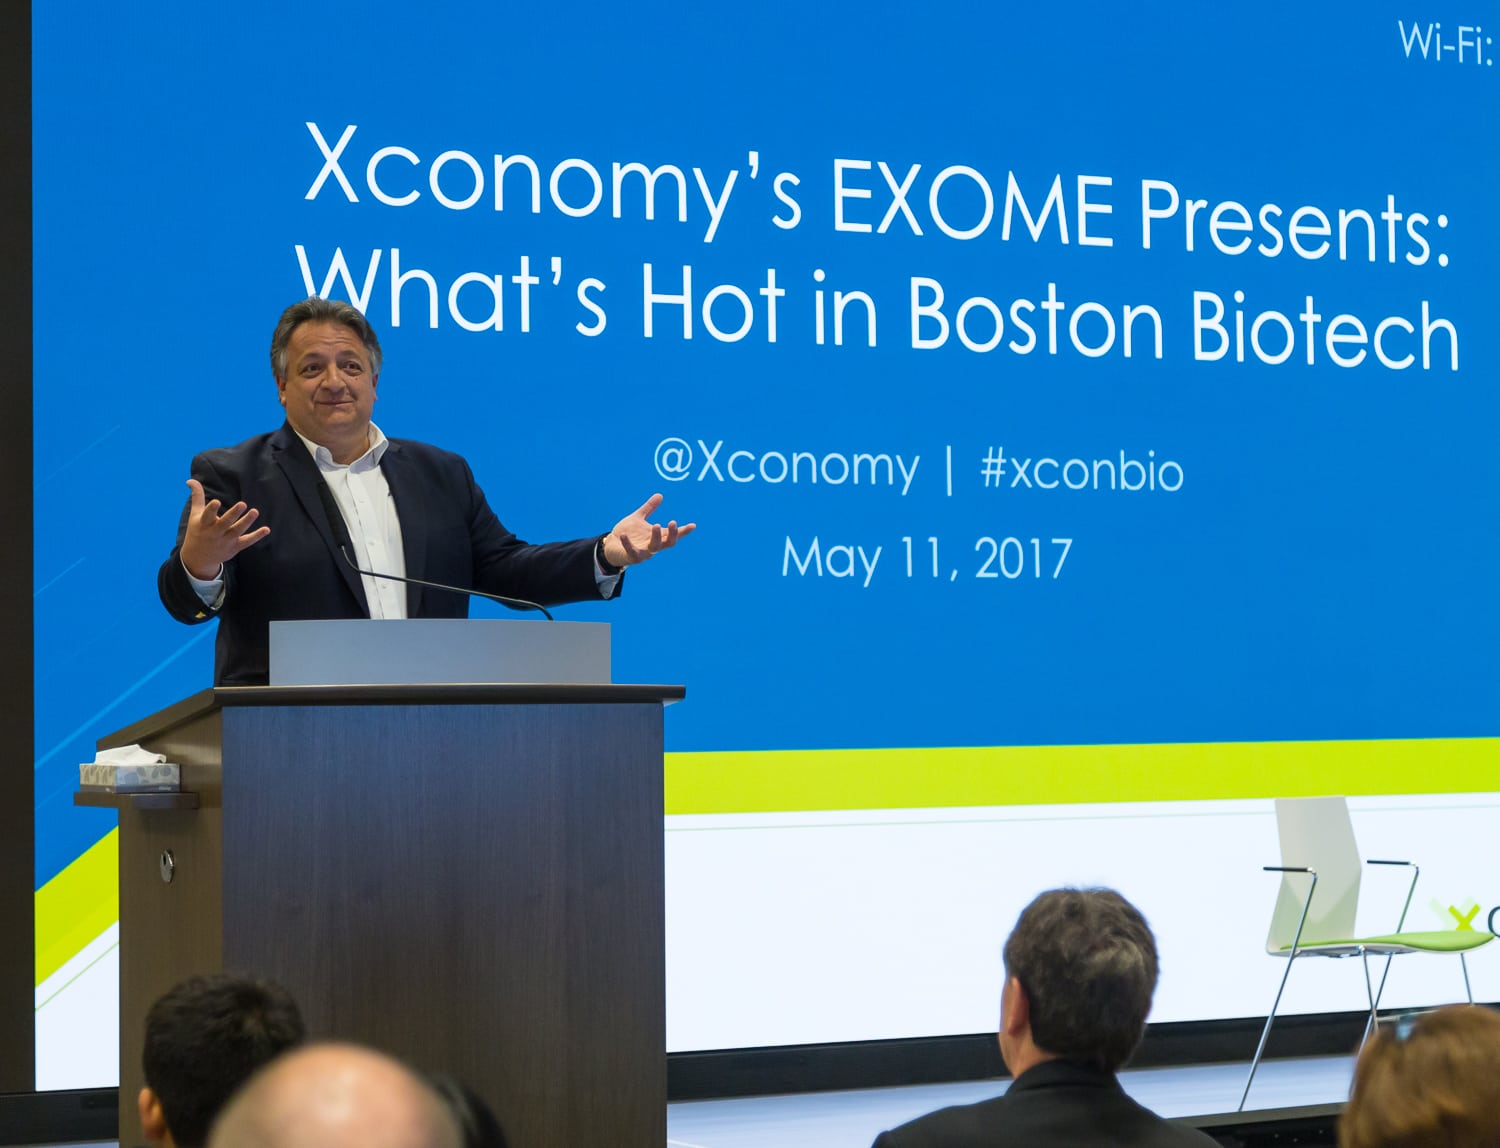 What's Hot in Boston Biotech